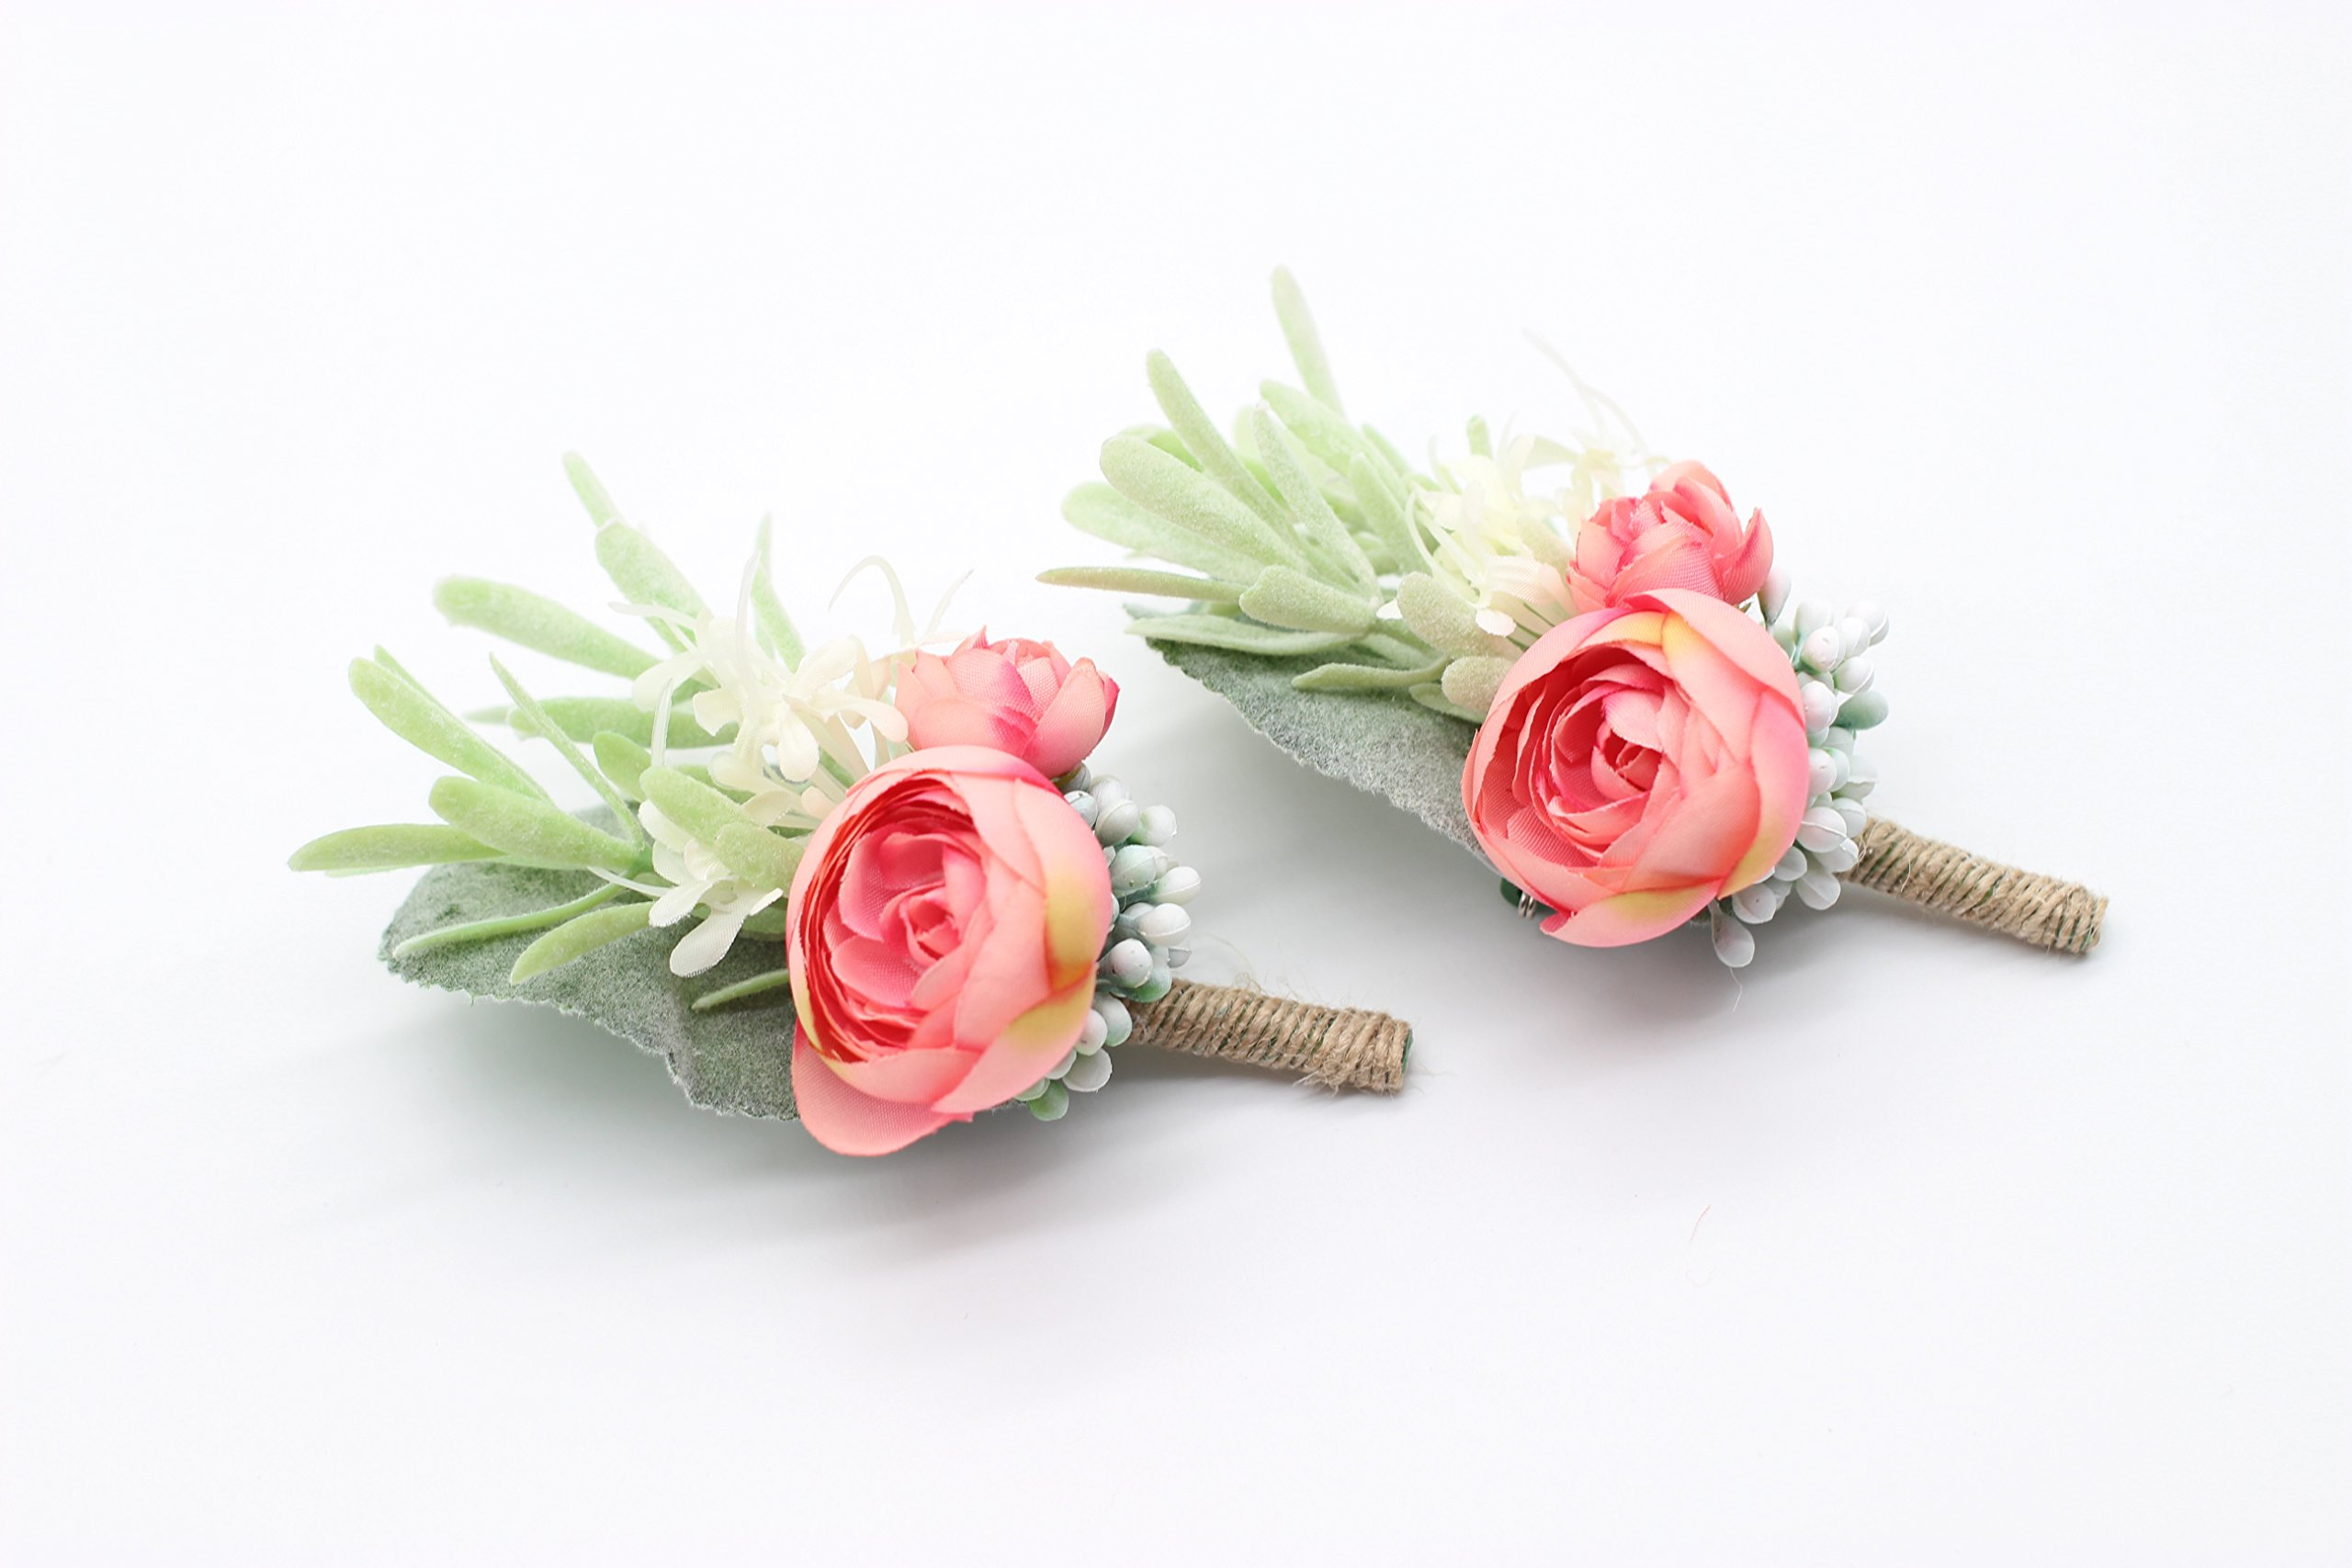 Yokoke-Artificial-Succulent-Boutonniere-Bouquet-Corsage-Wristlet-Vintage-Silk-Fake-Pink-Flowers-flocked-Plants-For-Groom-Bride-Wedding-Decor-2-Pcs